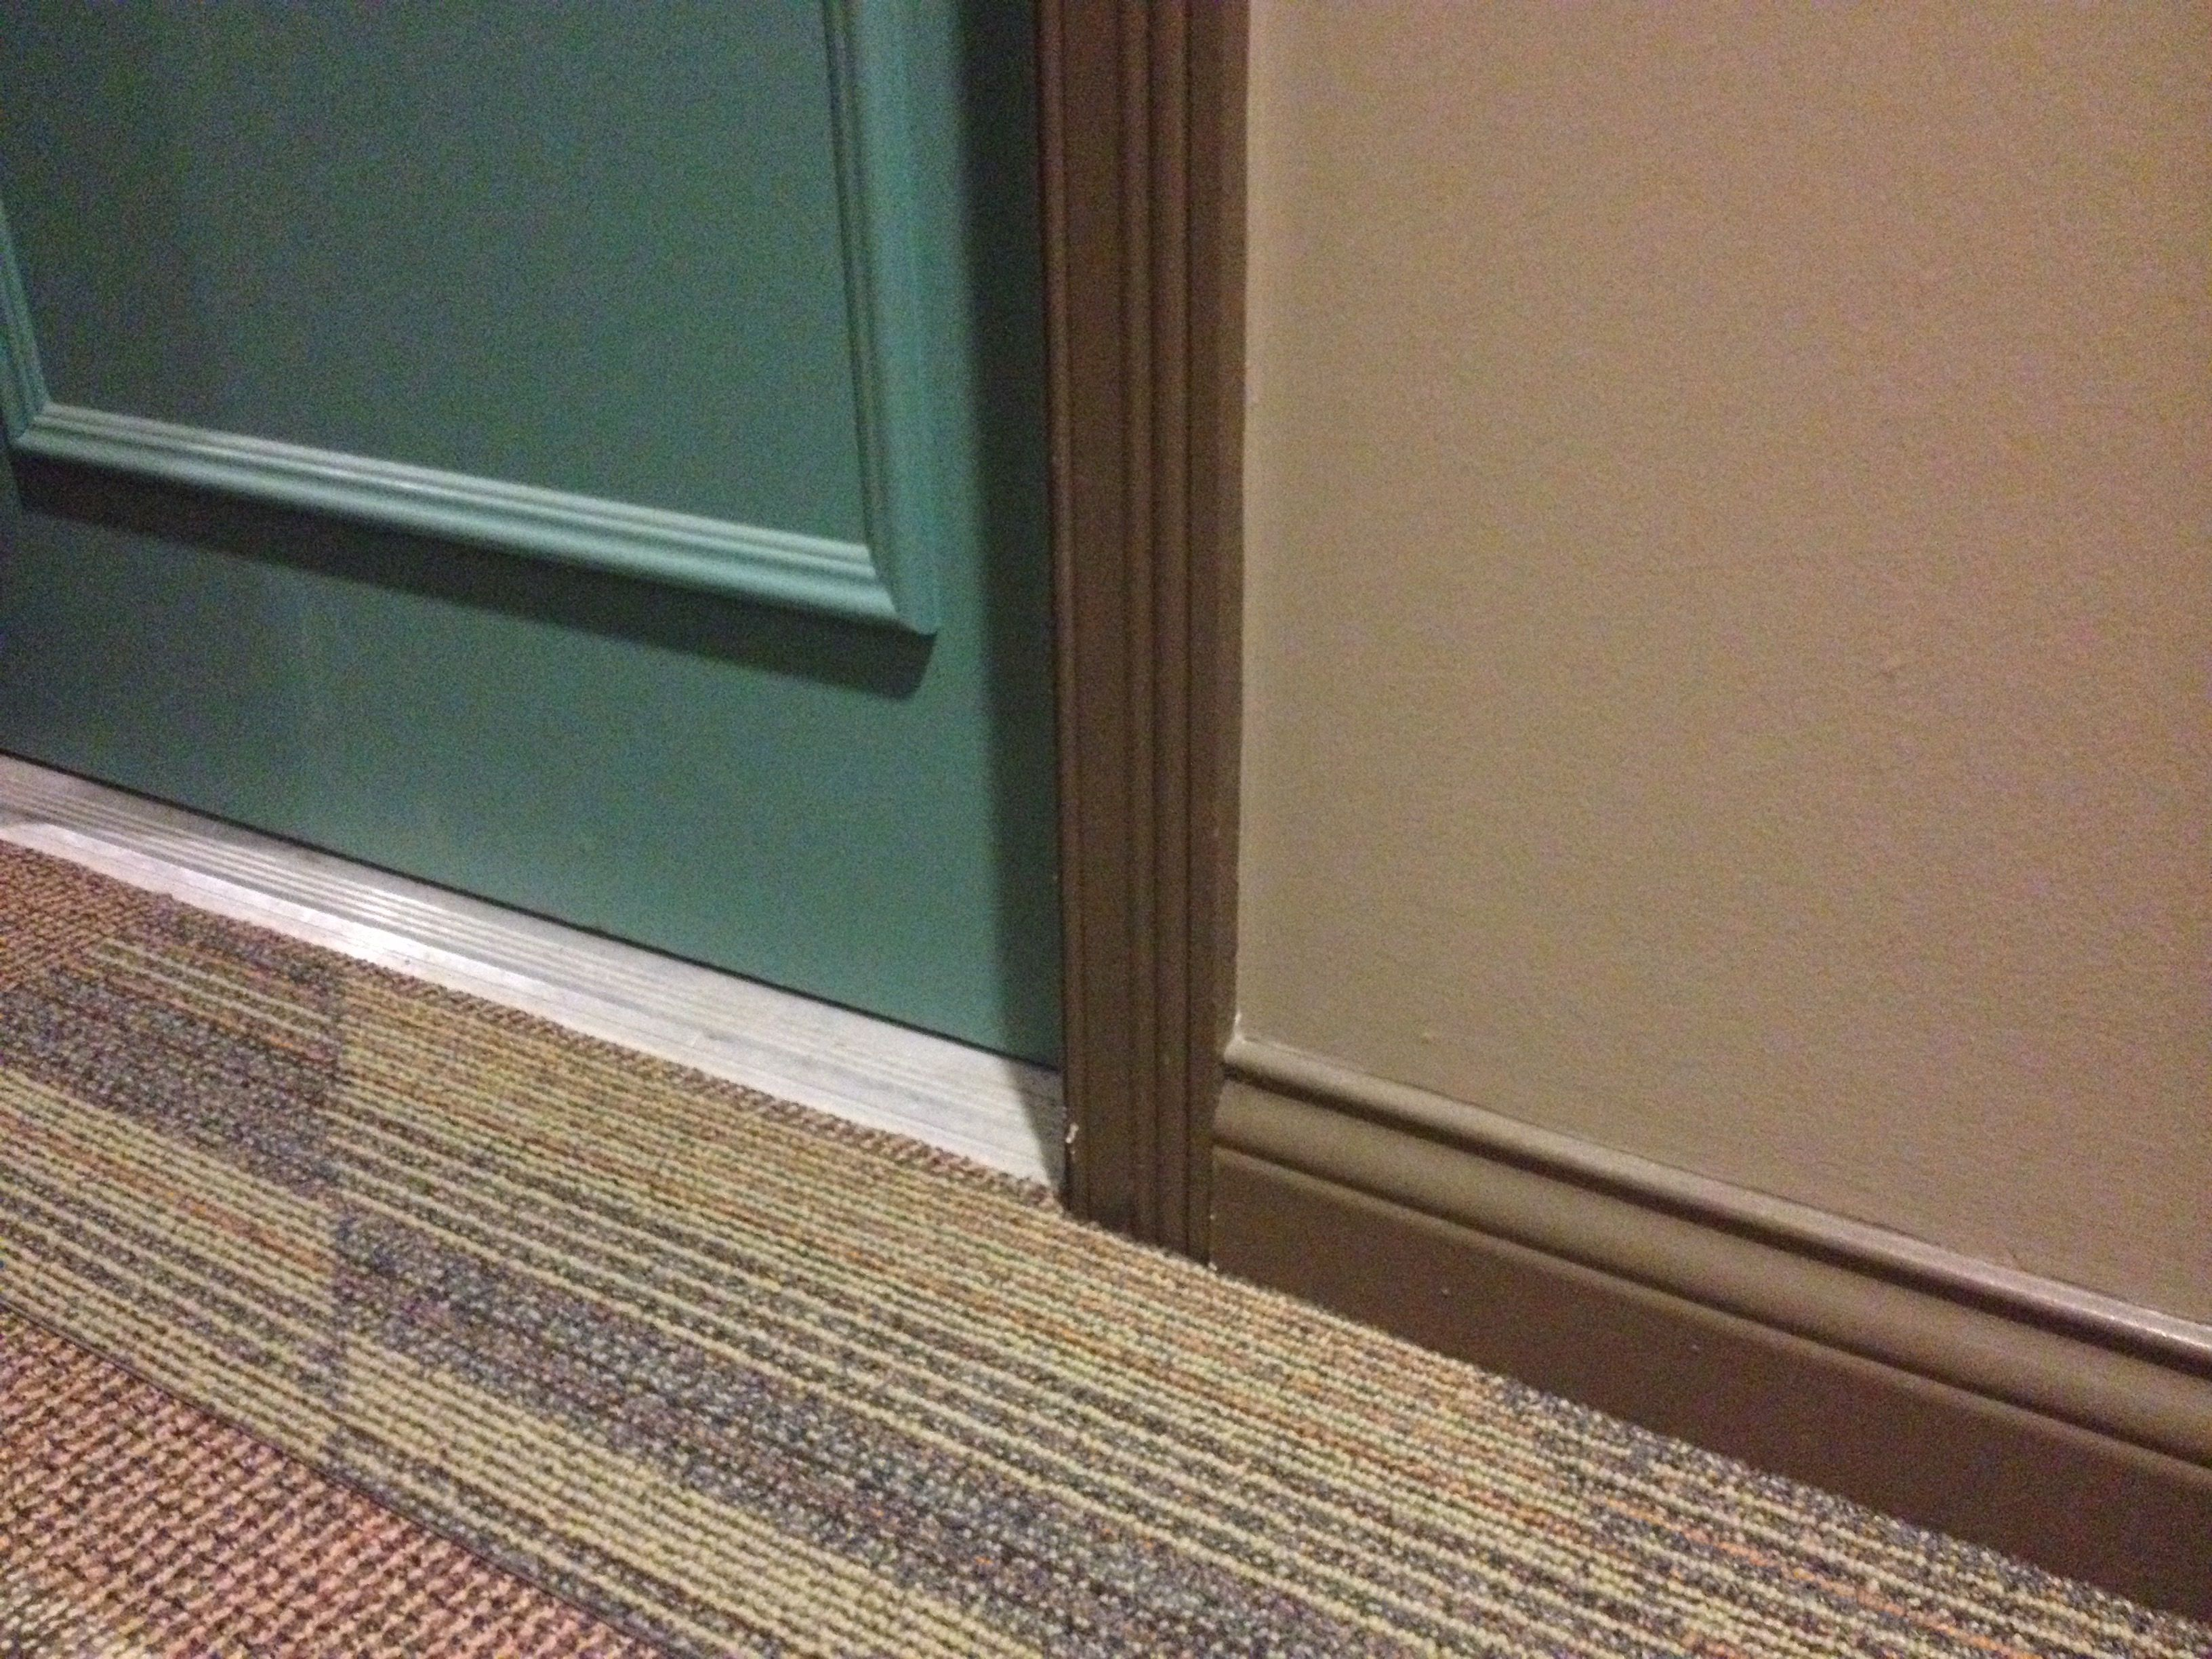 Carpet Plank From Interface In Hallway For Comparison Carpet Tiles Color Mixing Carpet